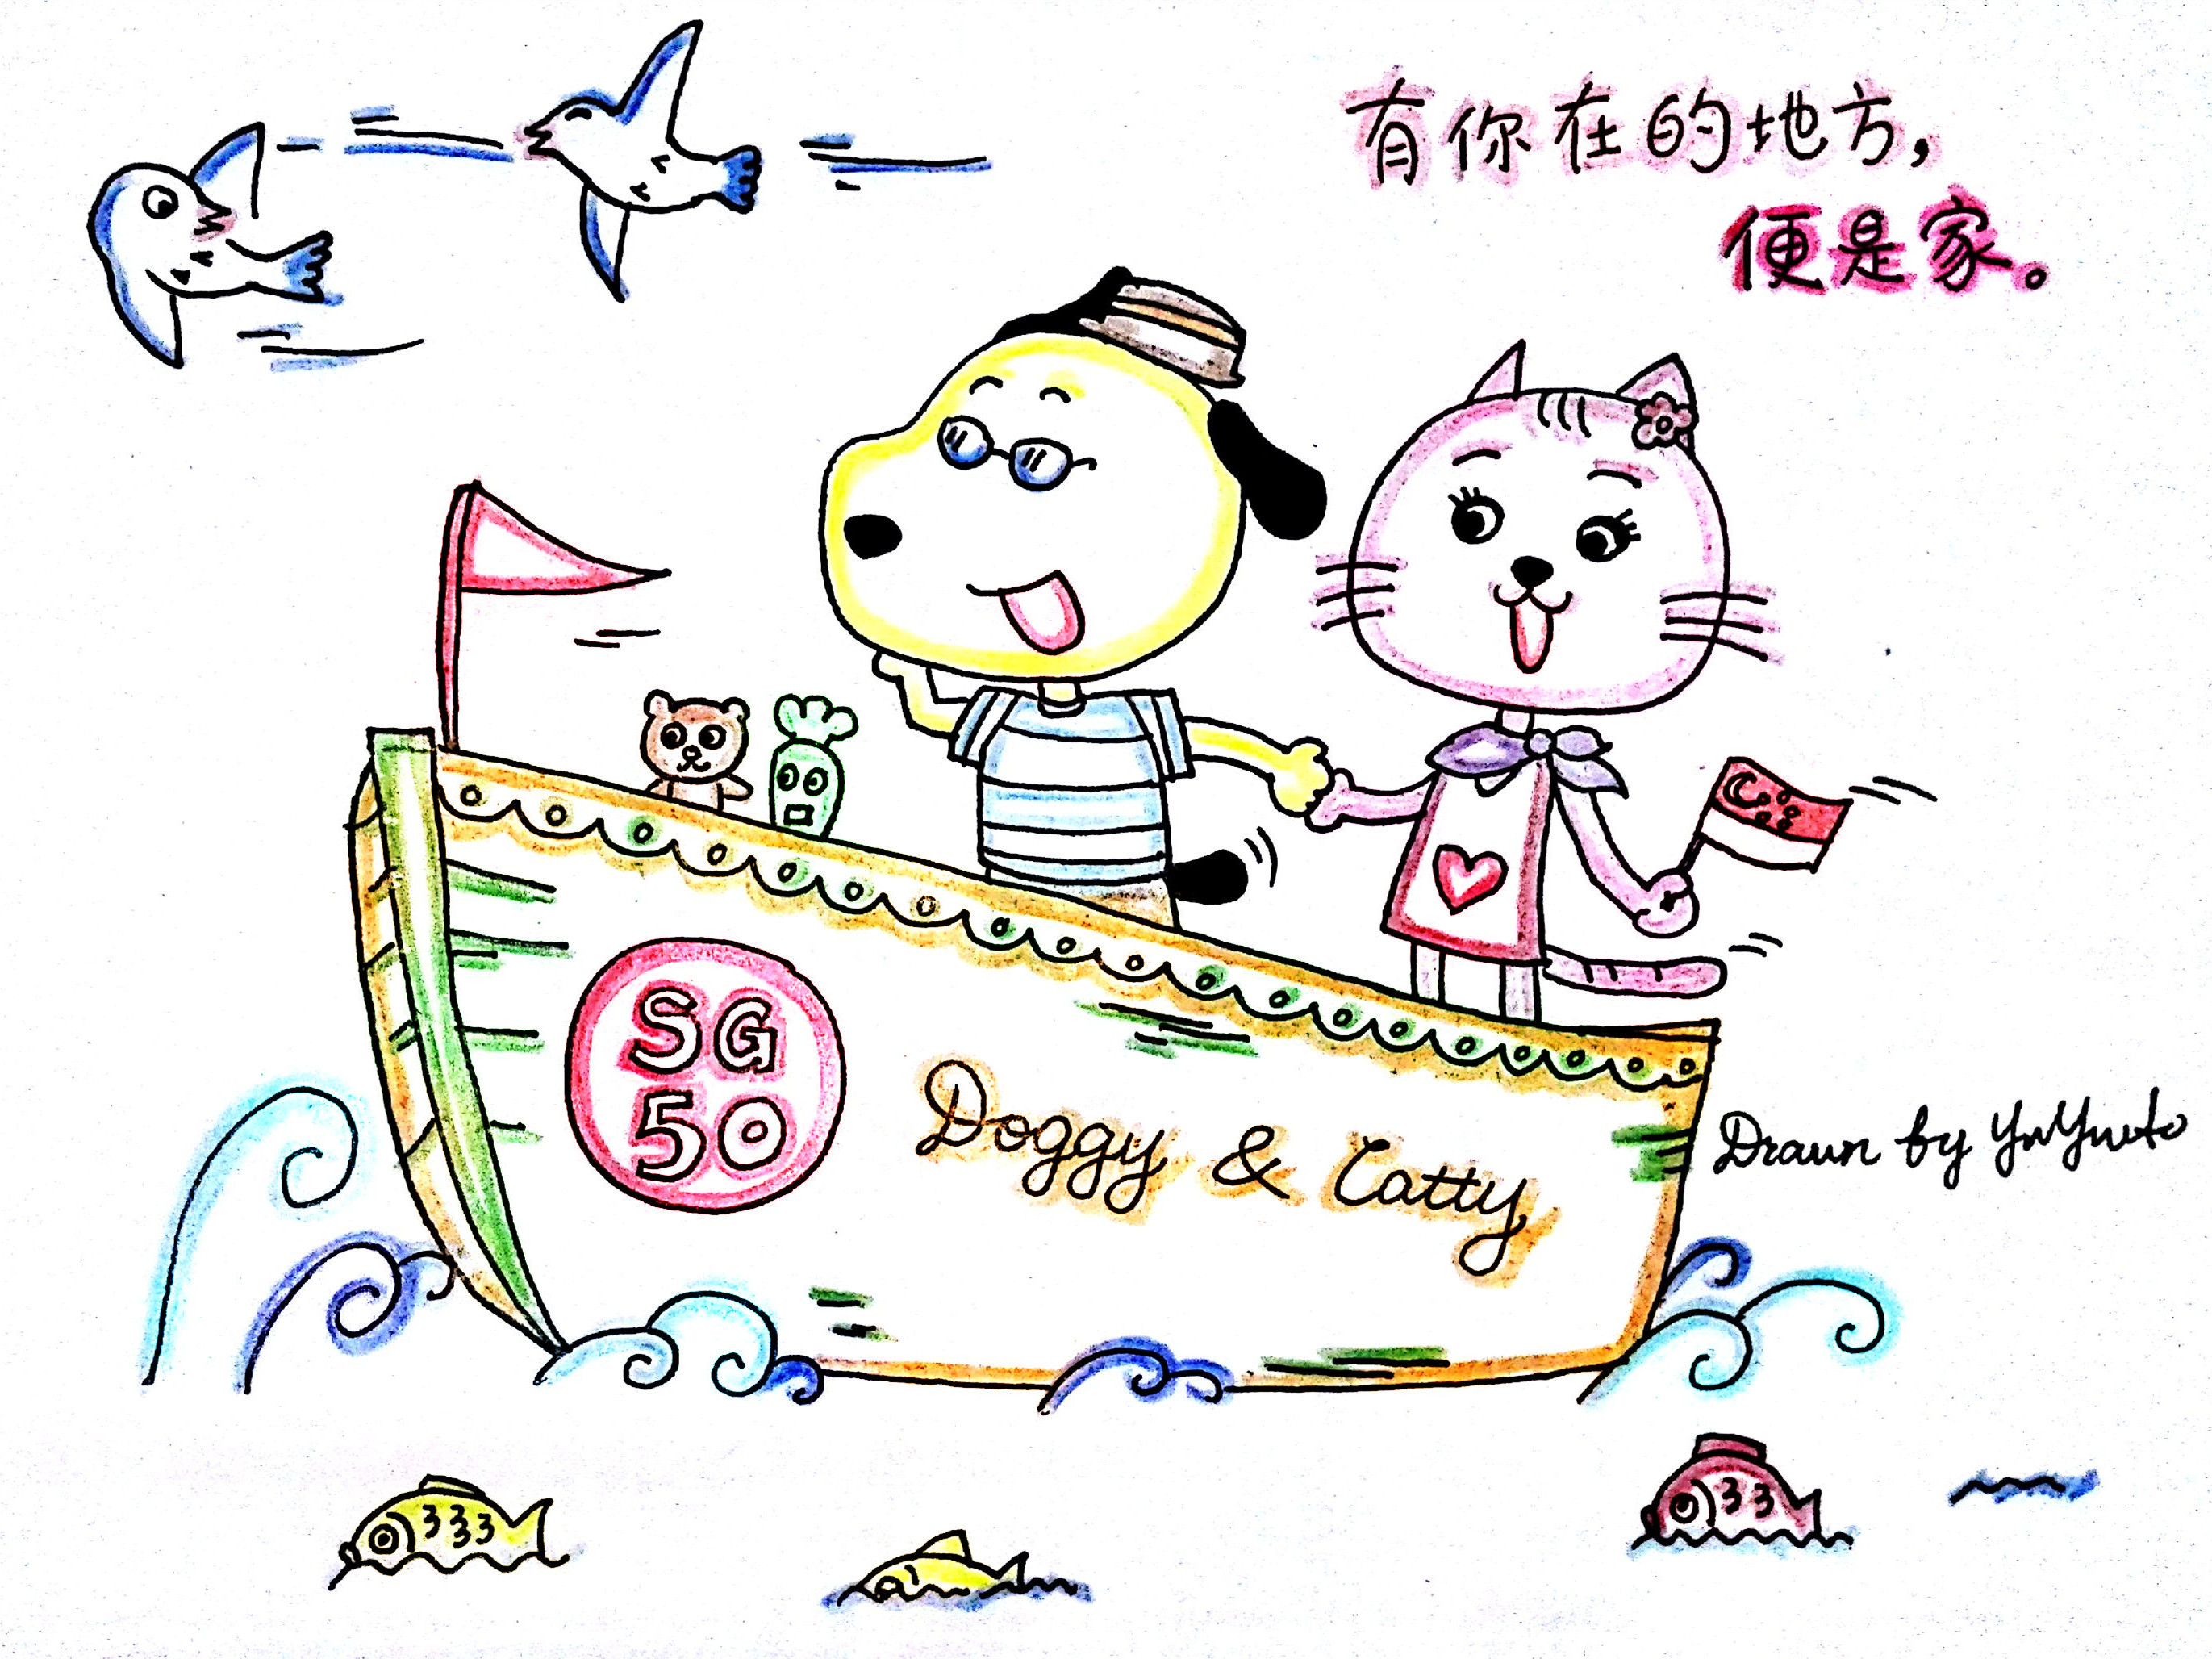 SG 50_Doggy and Catty_Alice Yu Yuebo_Mama on Palette